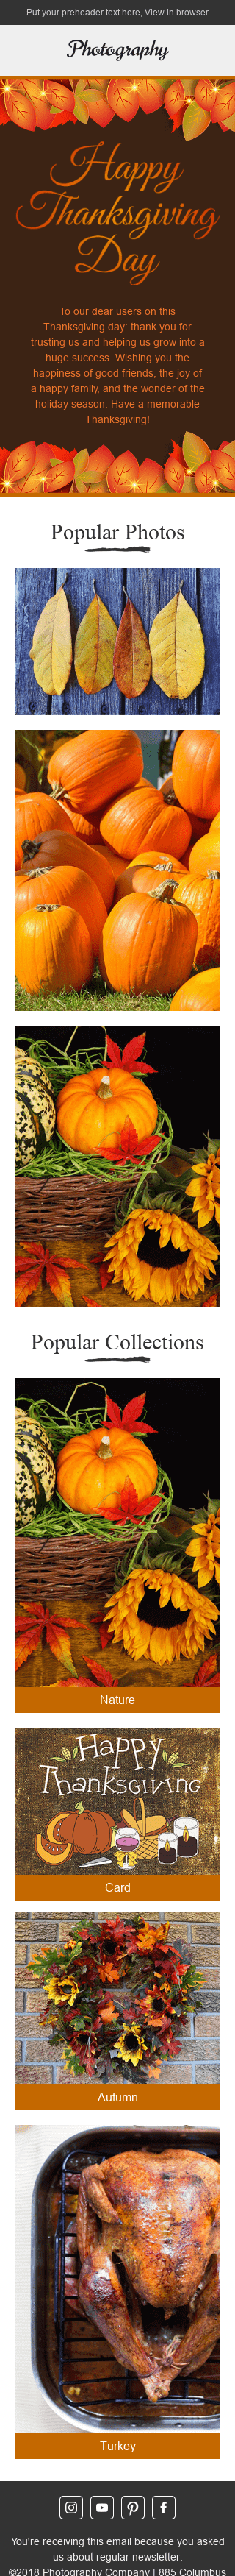 Stripo Photography Holiday newsletter Thanksgiving Day Golden Autumn email web